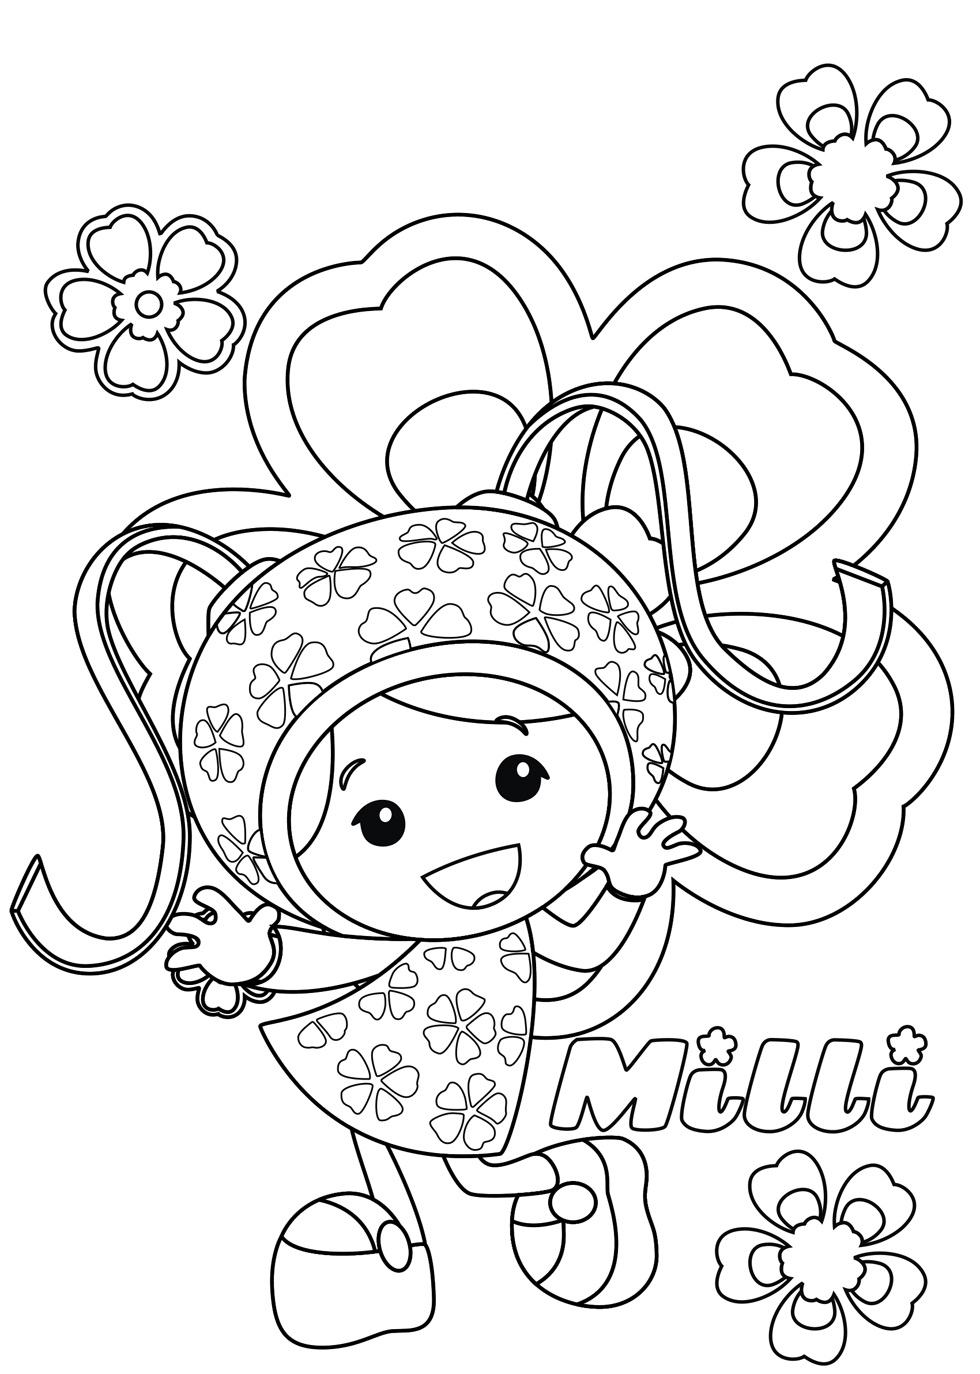 Free Printable Team Umizoomi Coloring Pages For Kids Coloring Pages To Print Free